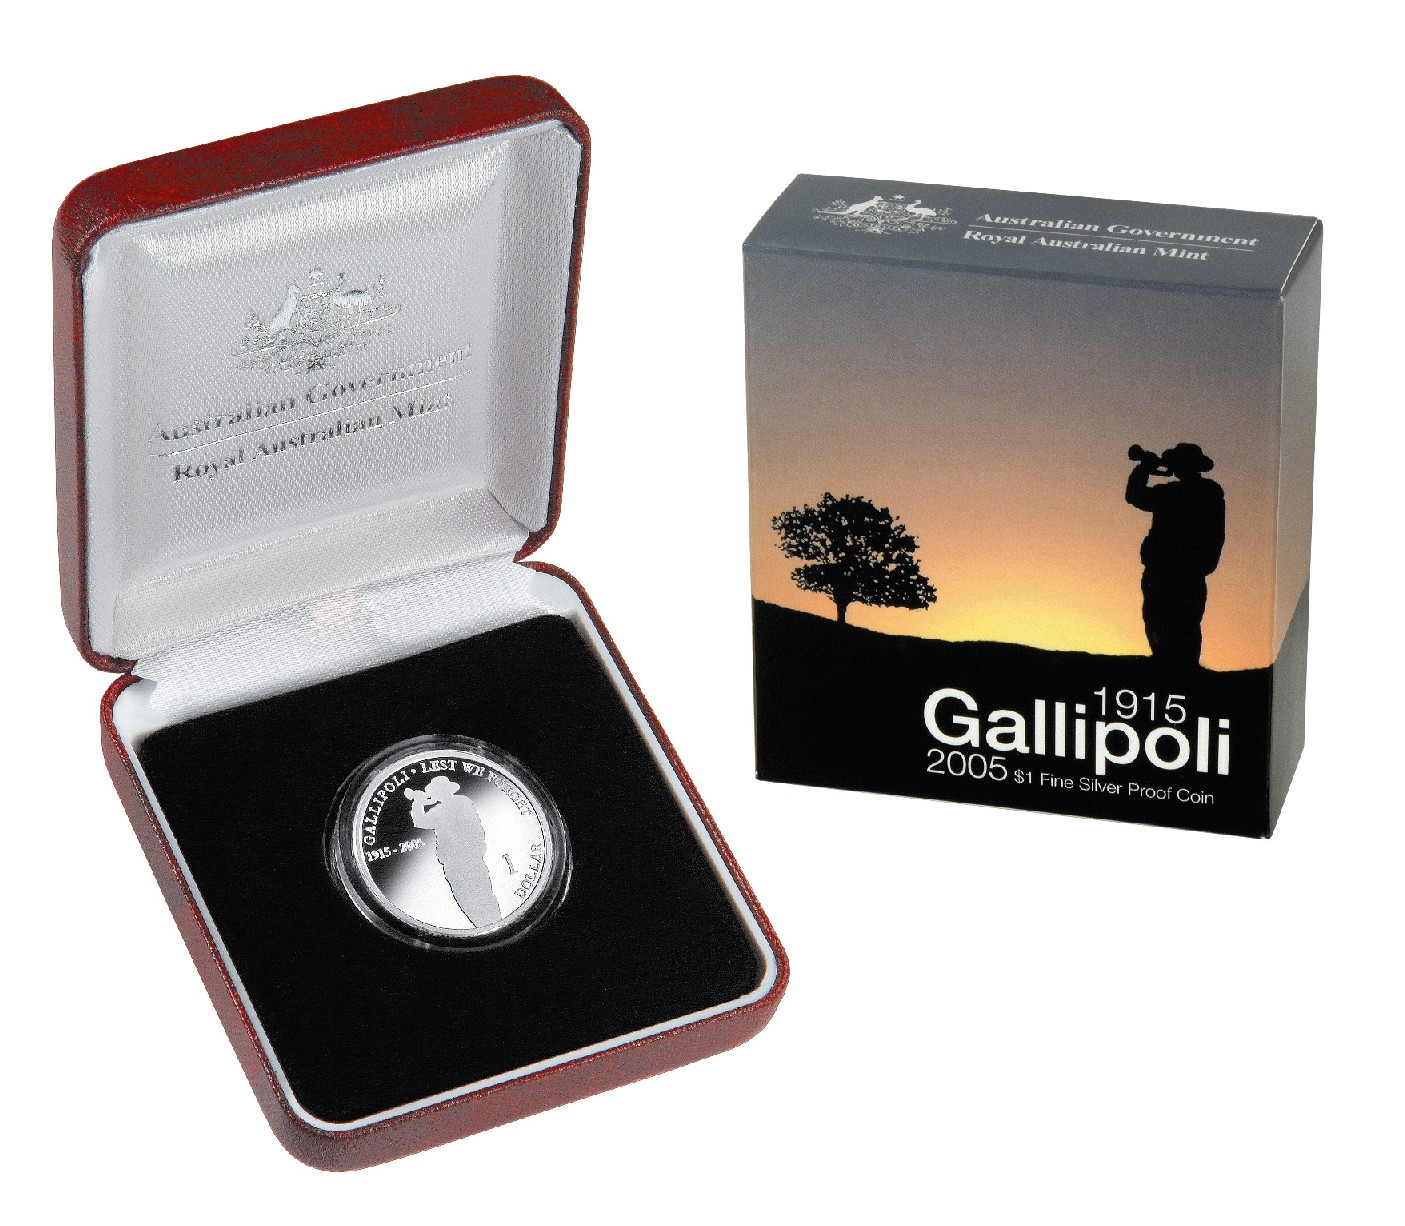 Thumbnail for 2005 Australian Silver Proof Coin - Gallipoli